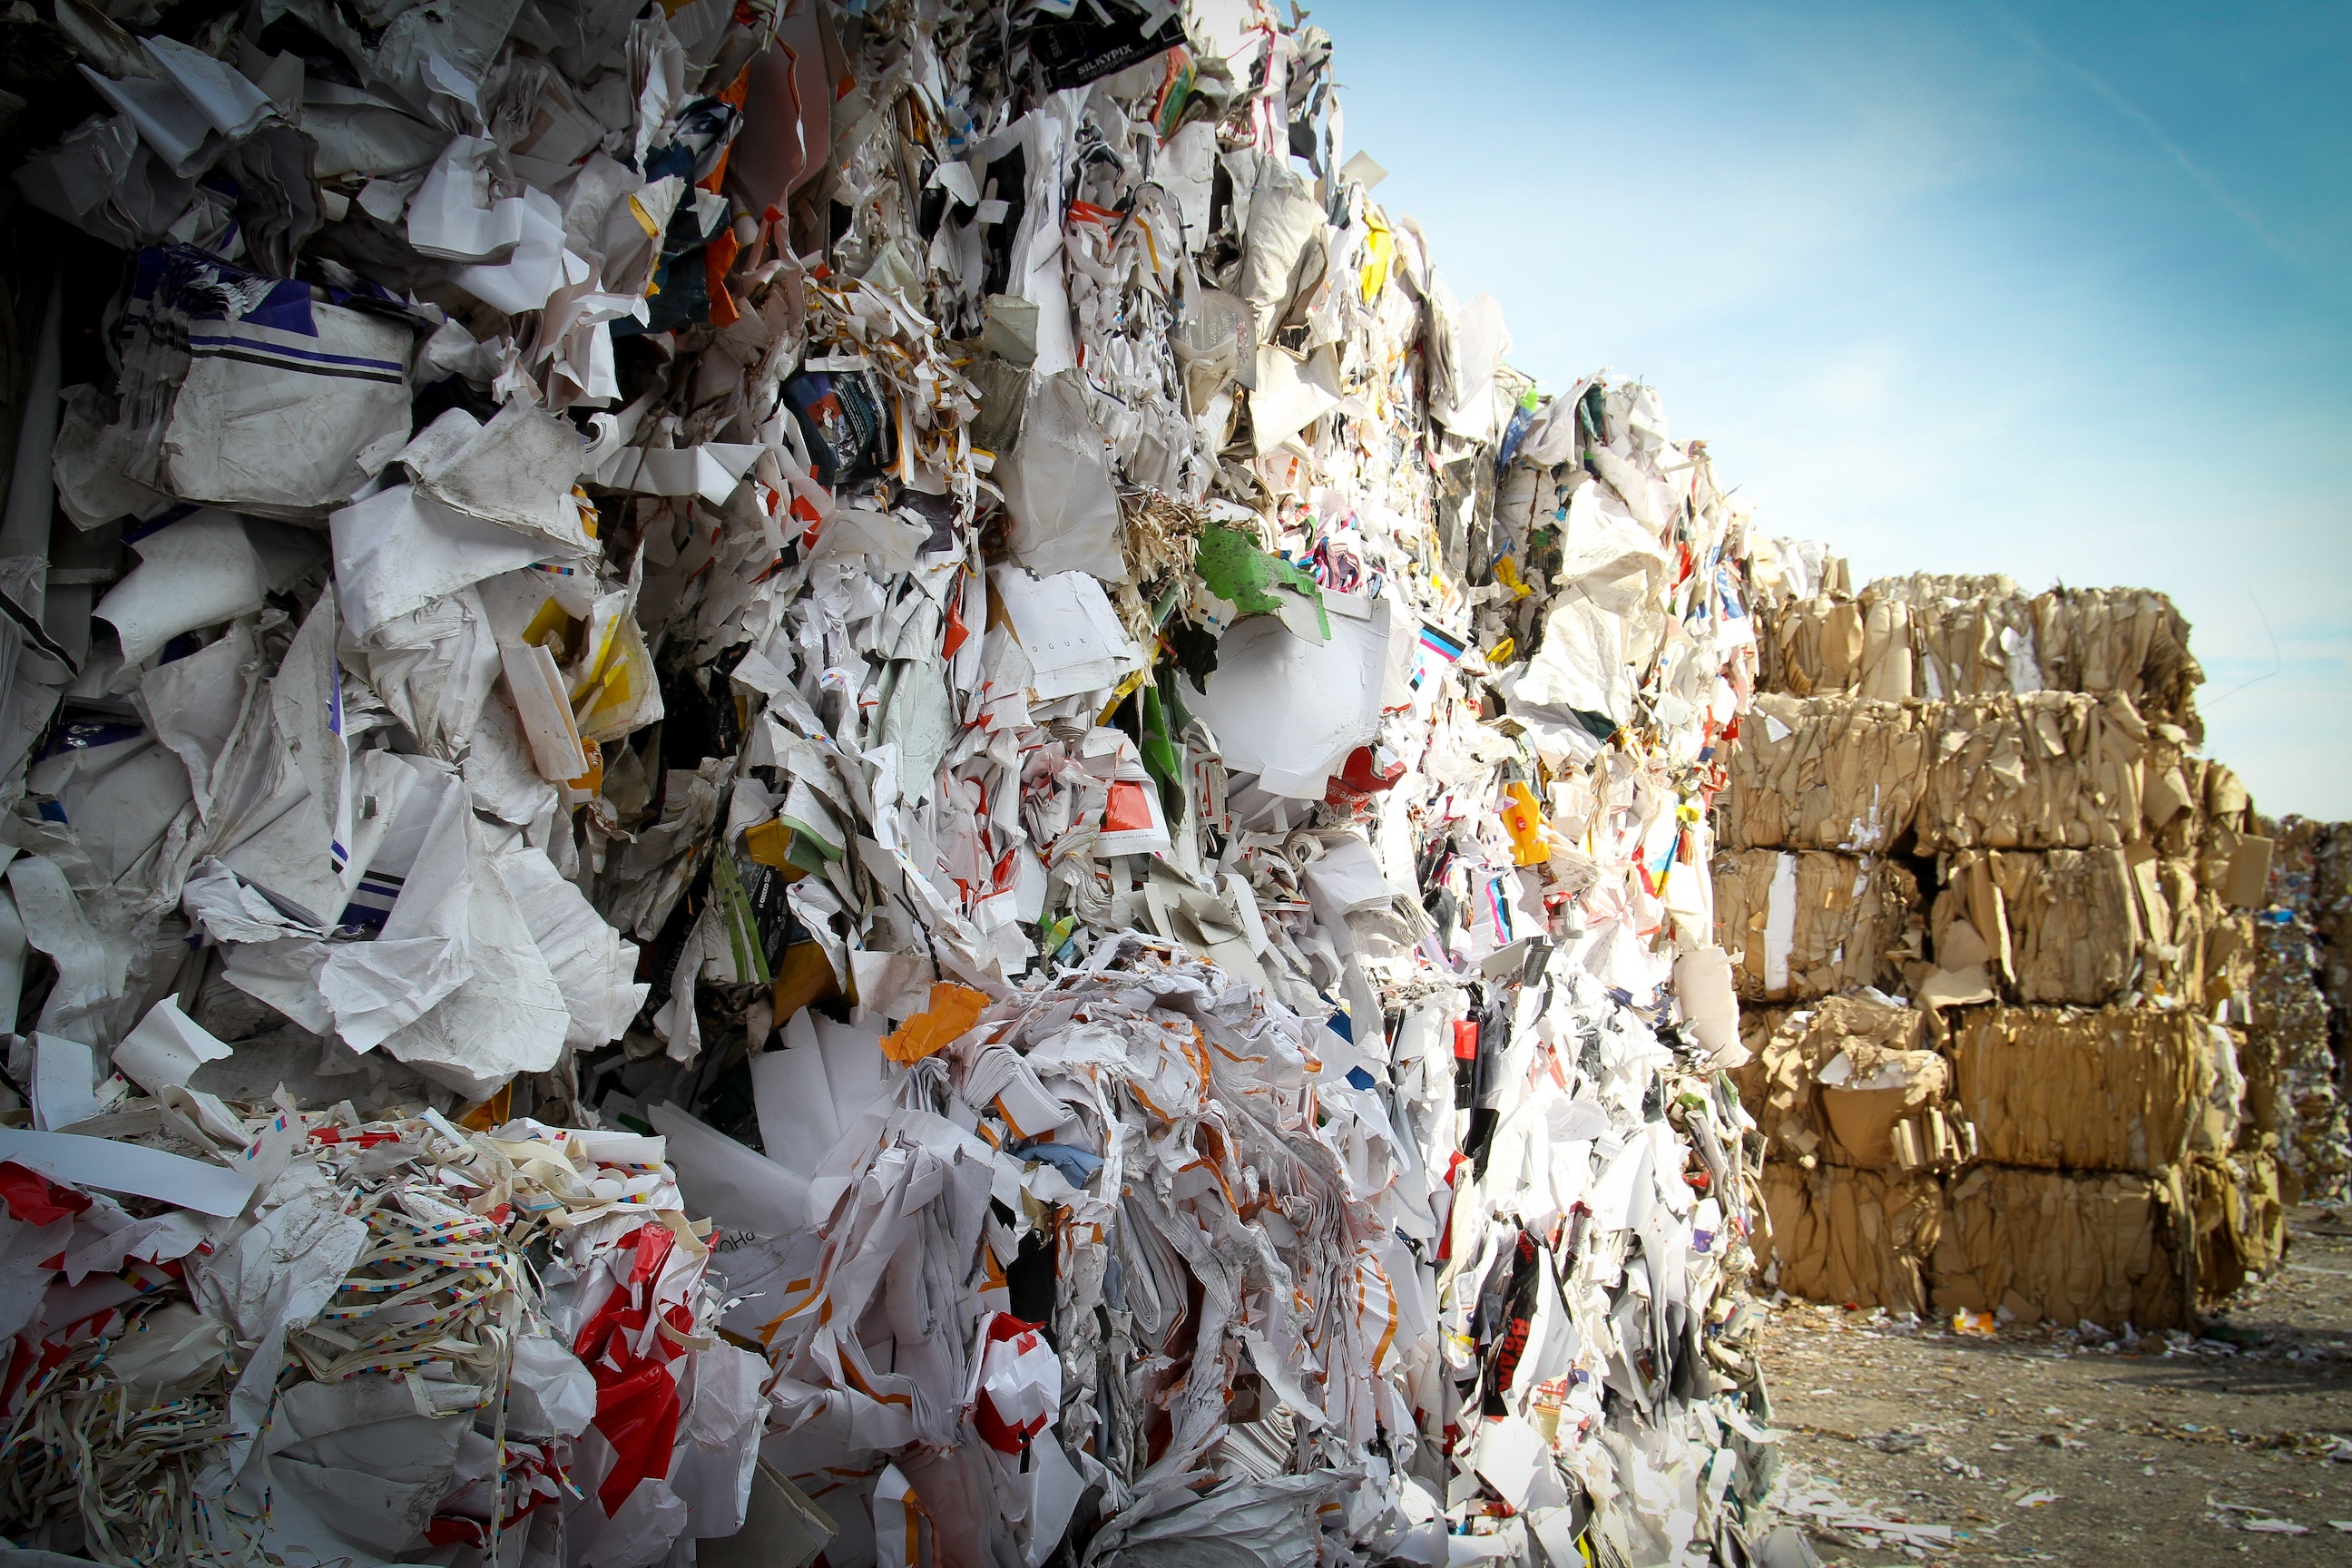 Facts About Recycling: A Global Approach